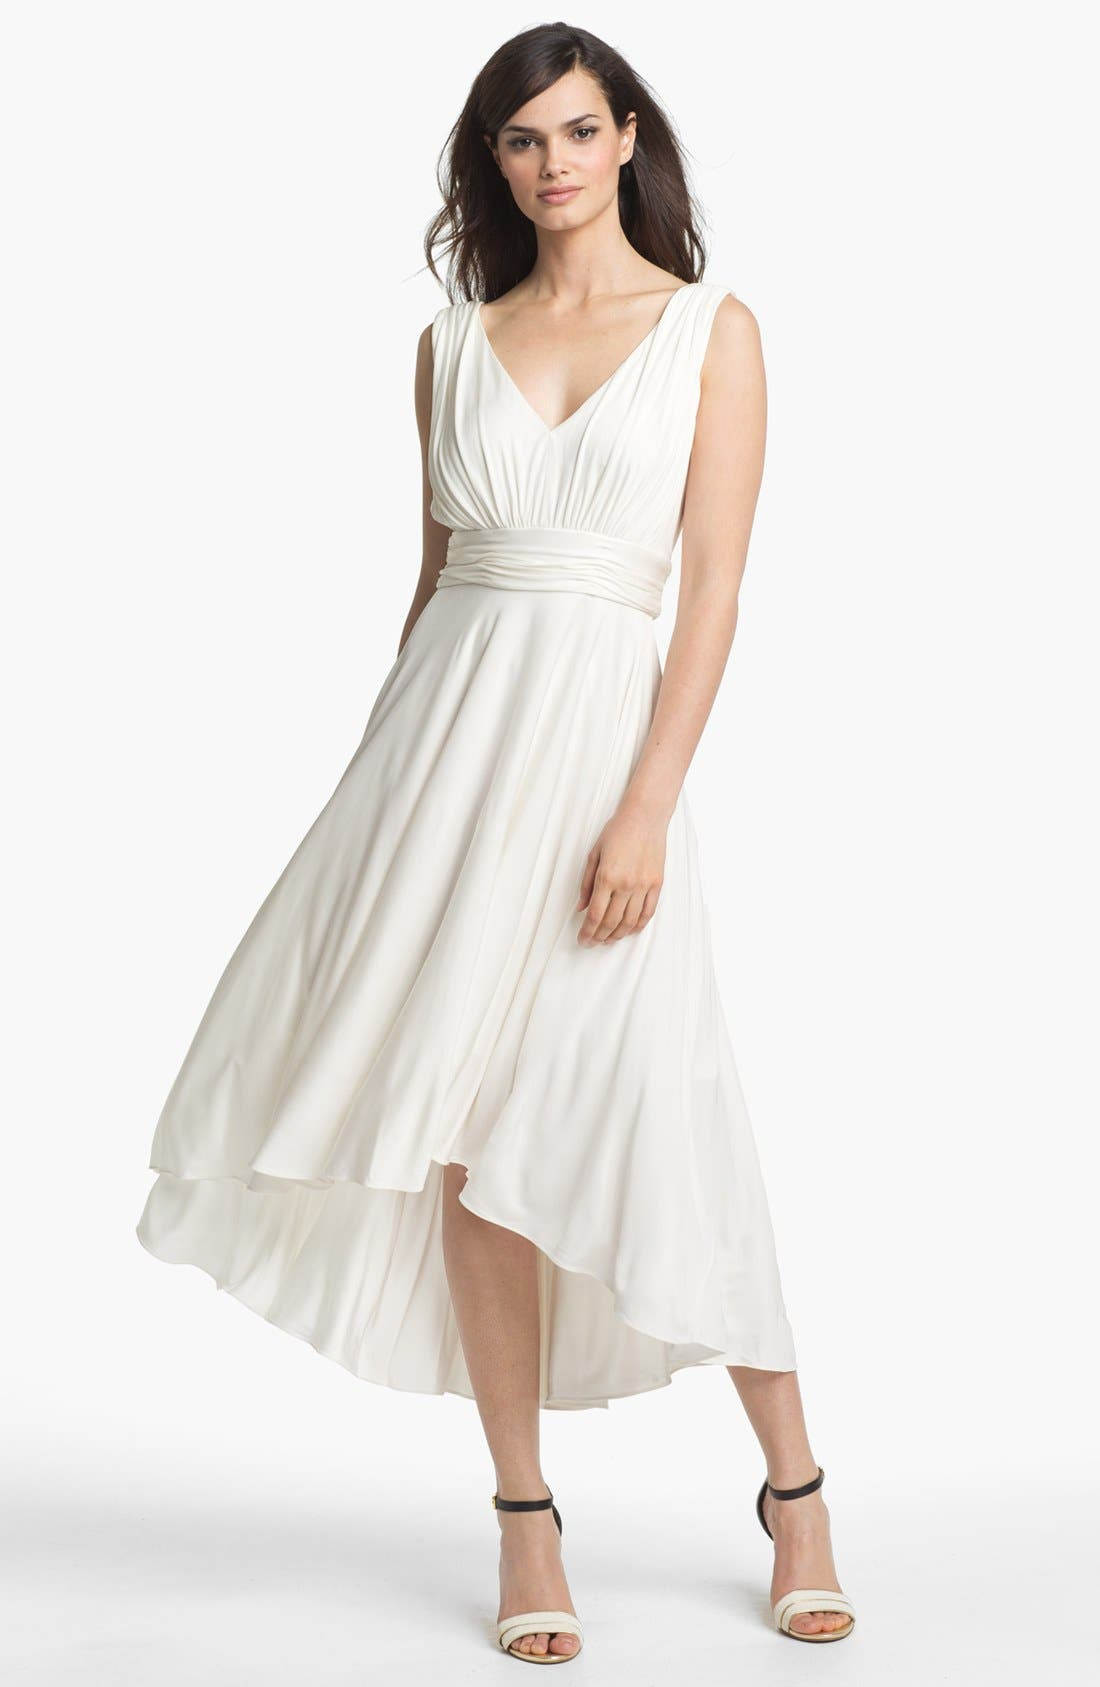 Alternate Image 1 Selected - Suzi Chin for Maggy Boutique Sleeveless Fit & Flare Dress